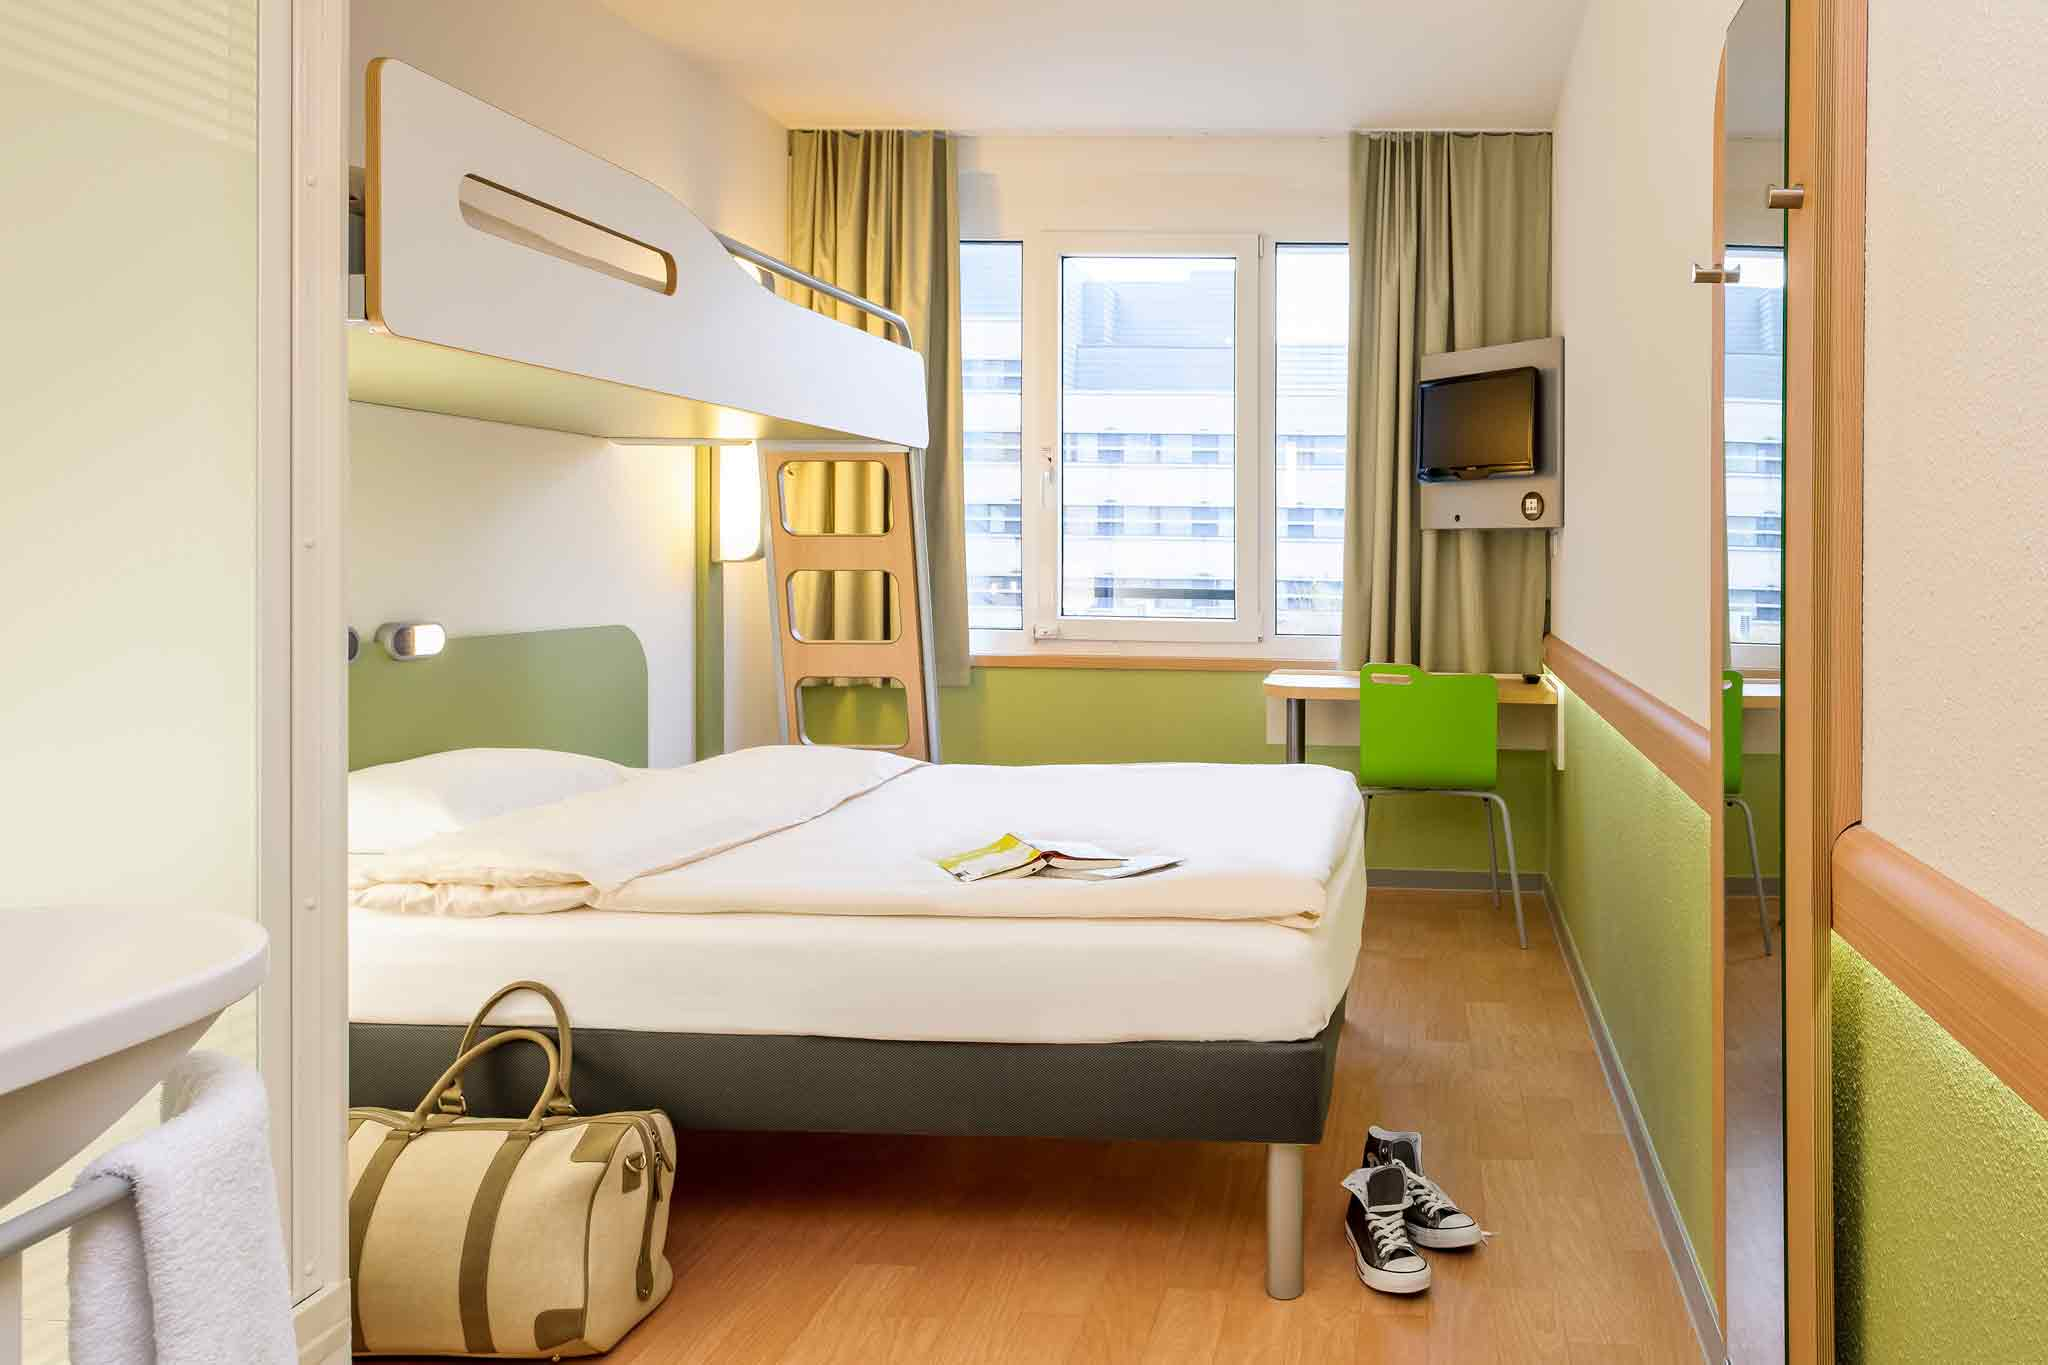 Hotel ibis budget Bern Expo | Accor Hotels